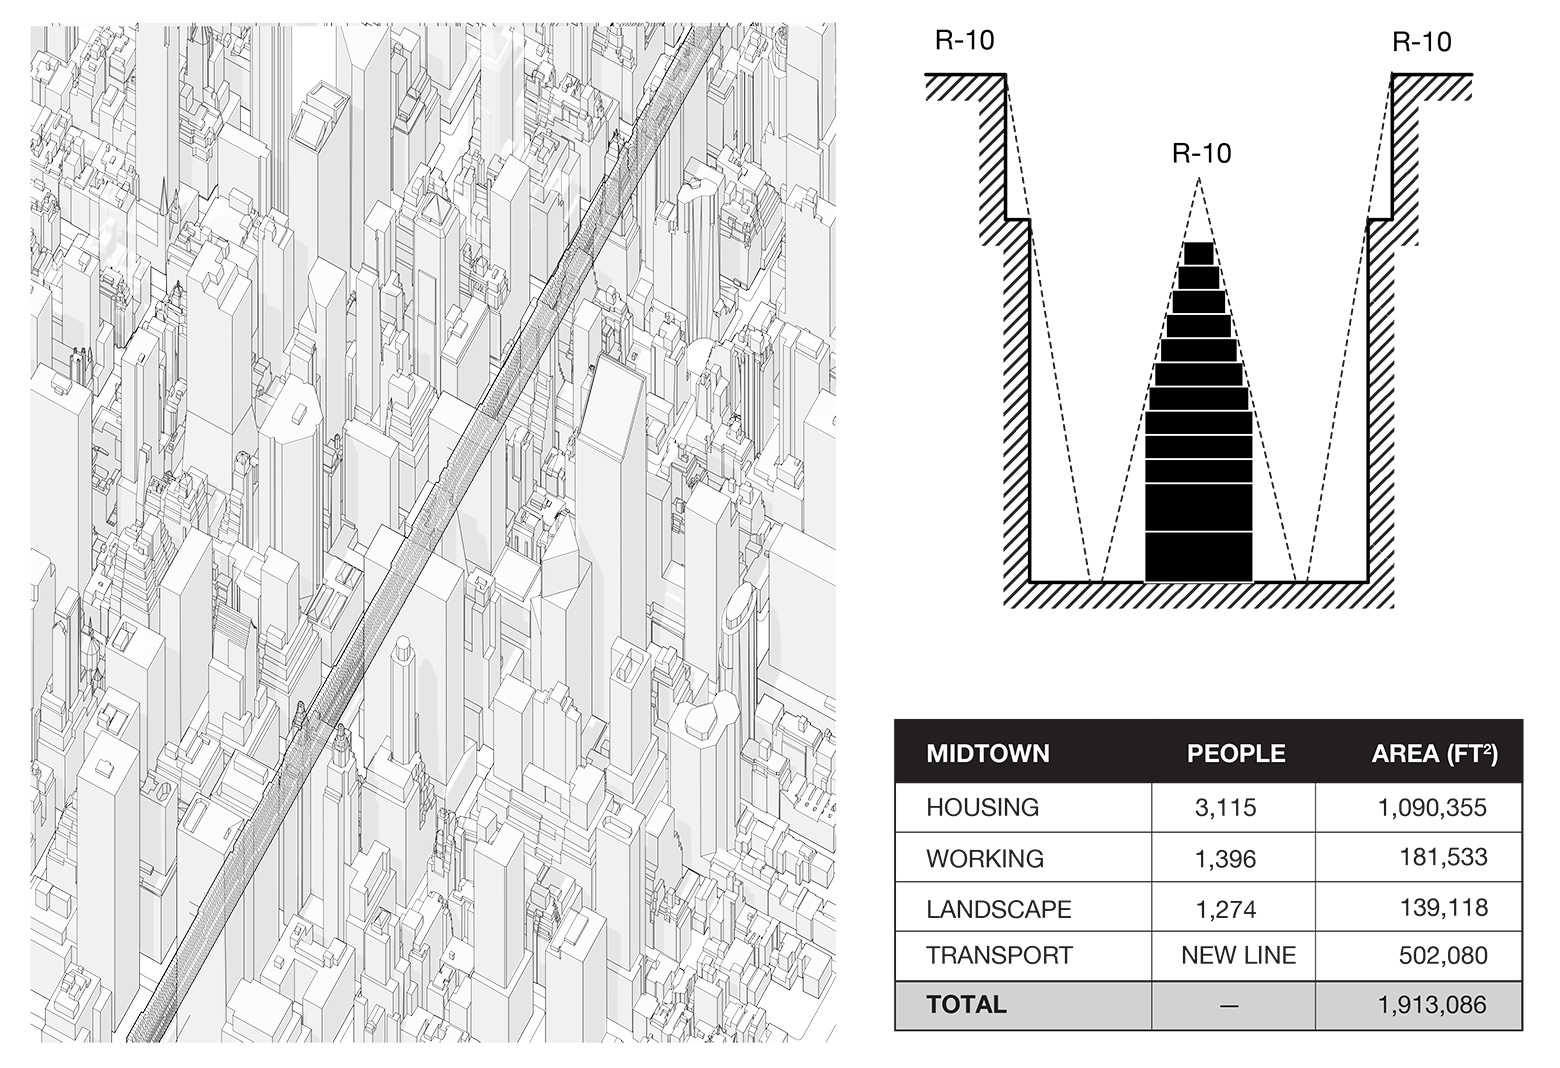 Axon and statistics on the potential for ININ infill housing infrastructure along the Park Avenue midtown Manhattan zone